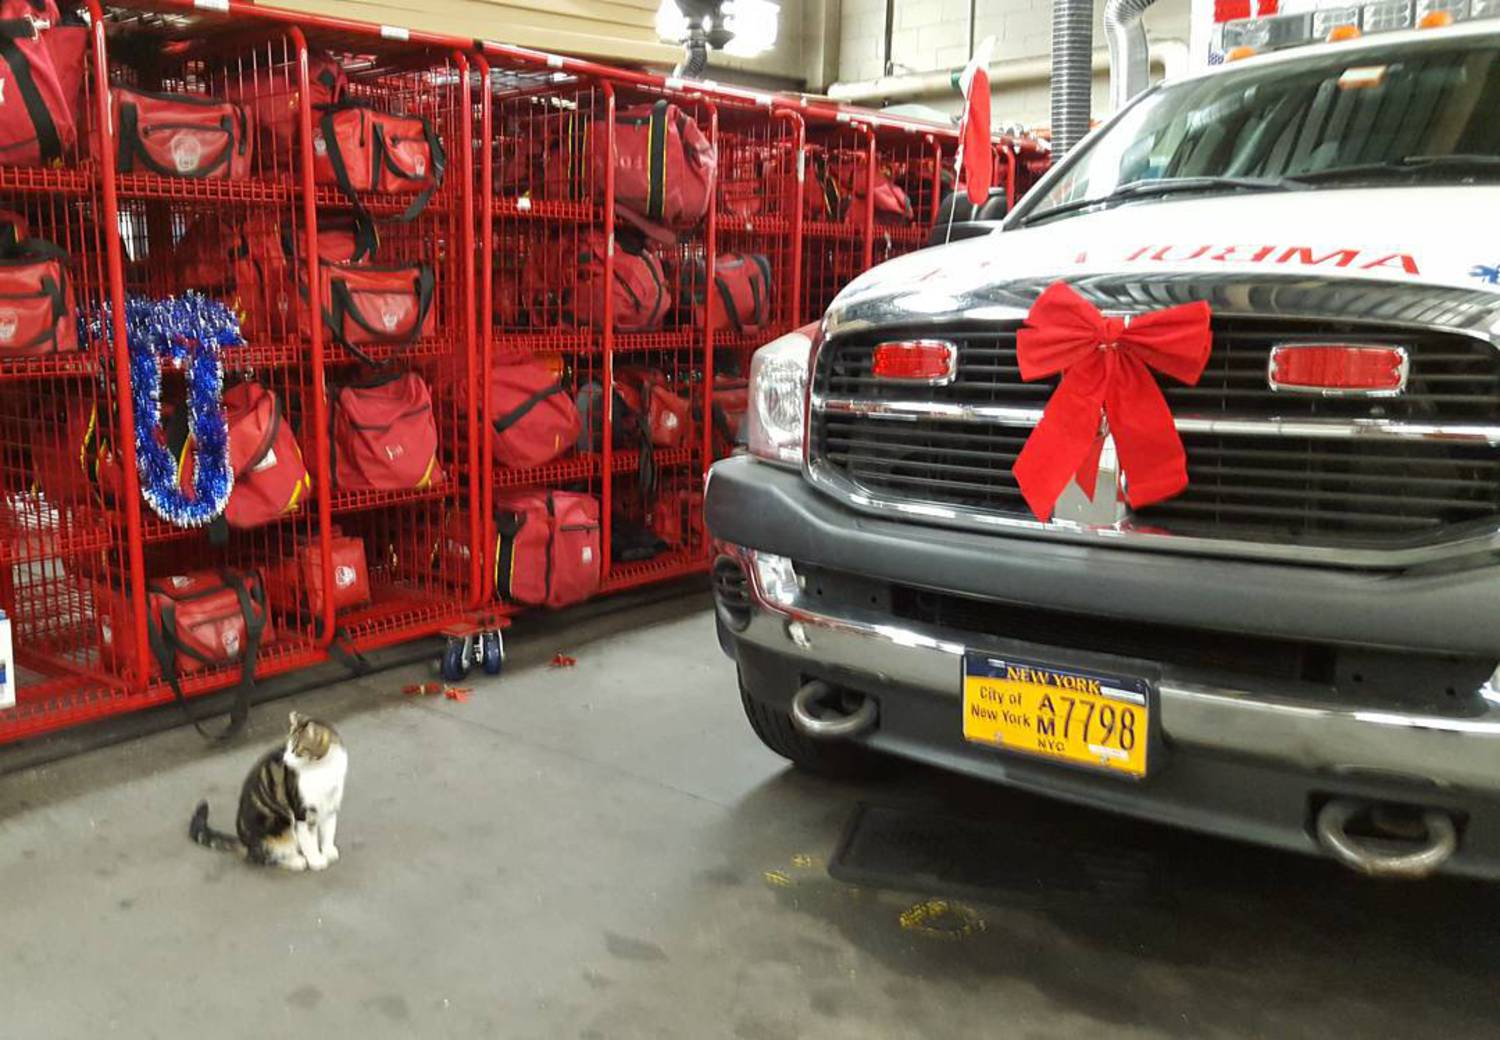 This gift-wrapped thing is really big and it doesn't smell like catnip. I hope it's for someone else. #itlookslikeregiftingtome #isthisreallyapresent #notforme  #ithinkithasabellthough #itsthethoughtthatcounts #holidayseason #ambulance #fdnyems #happyholidays #cats #catsofinstagram #meow #kitty #tabby #tabbycats #tabbiesofinstagram